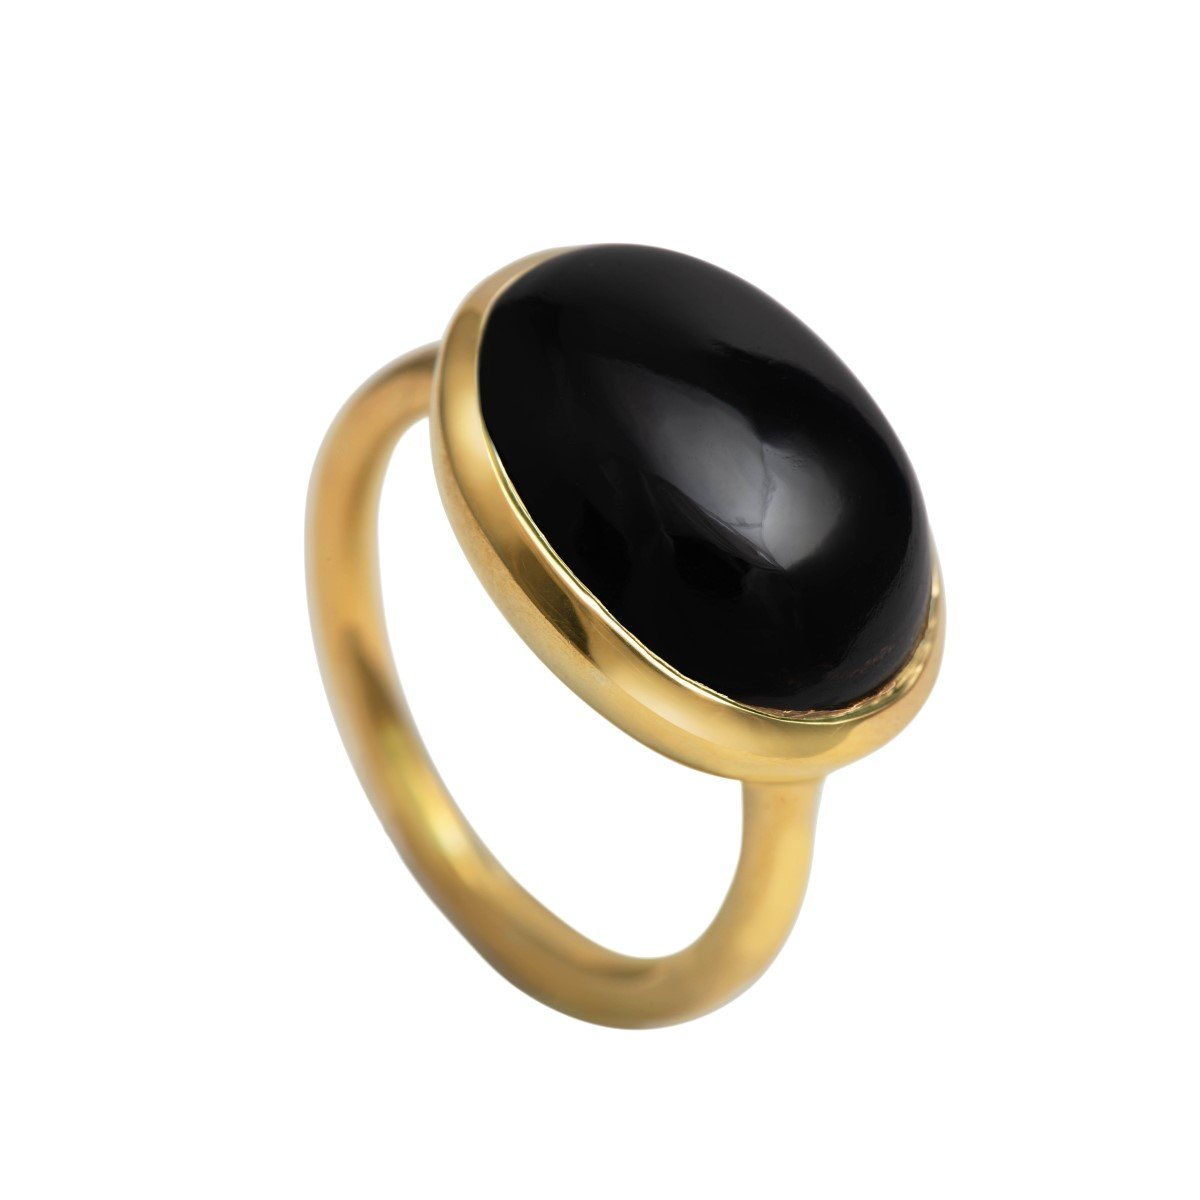 Cabochon Oval Cut Natural Gemstone Gold Plated Sterling Silver Ring - Black Onyx